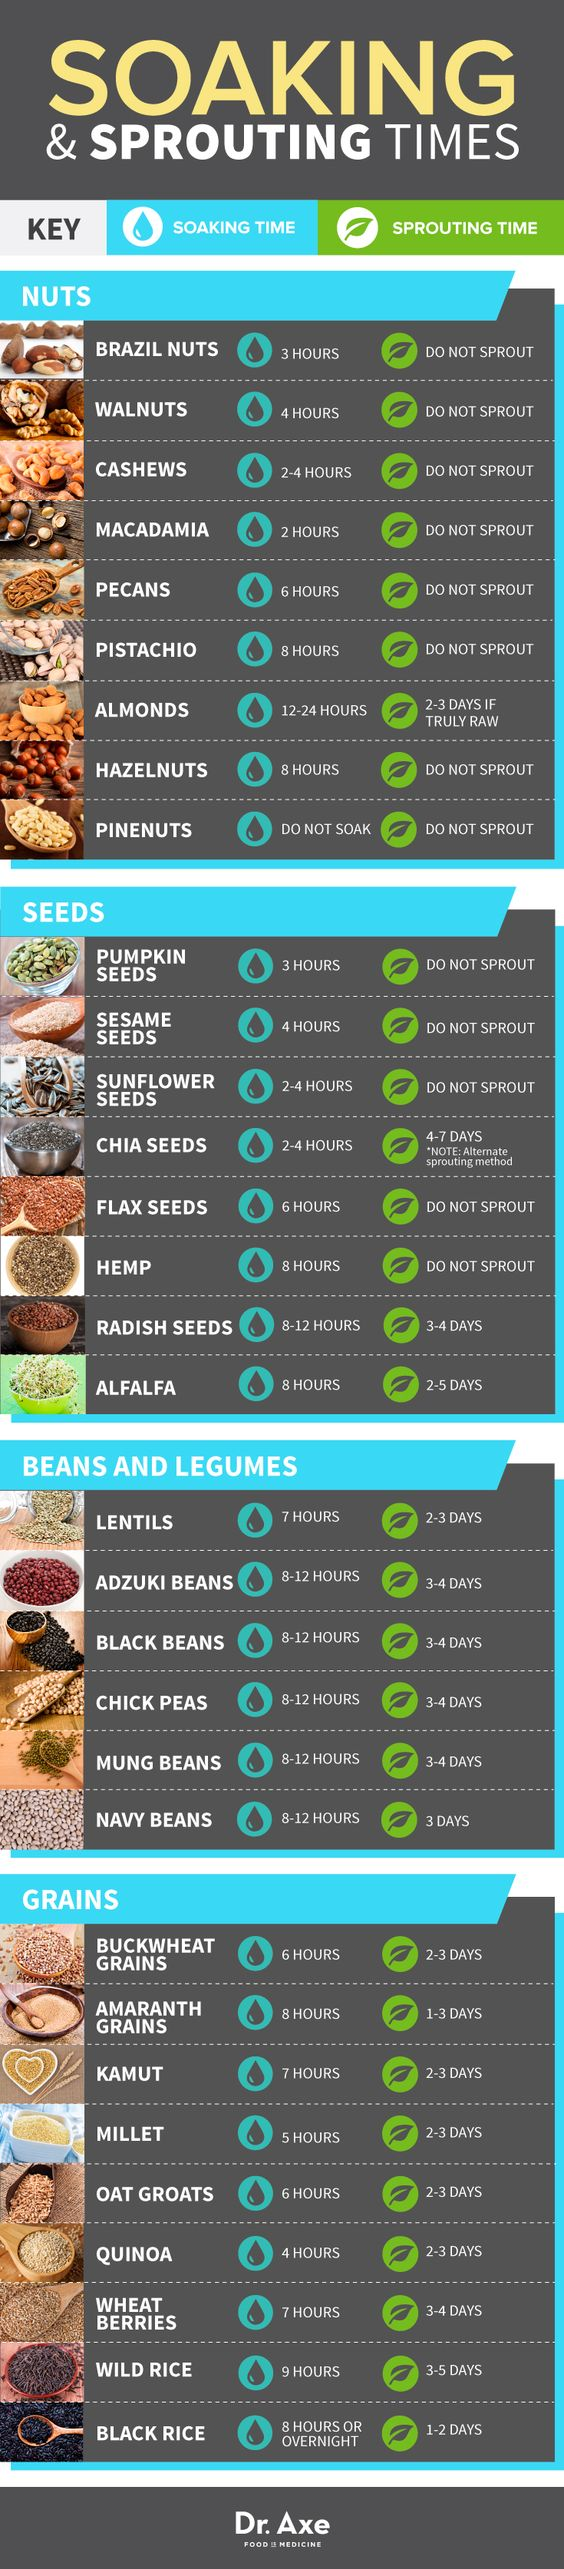 Soaking & Sprouting Times  http://www.draxe.com #health #Holistic #natural